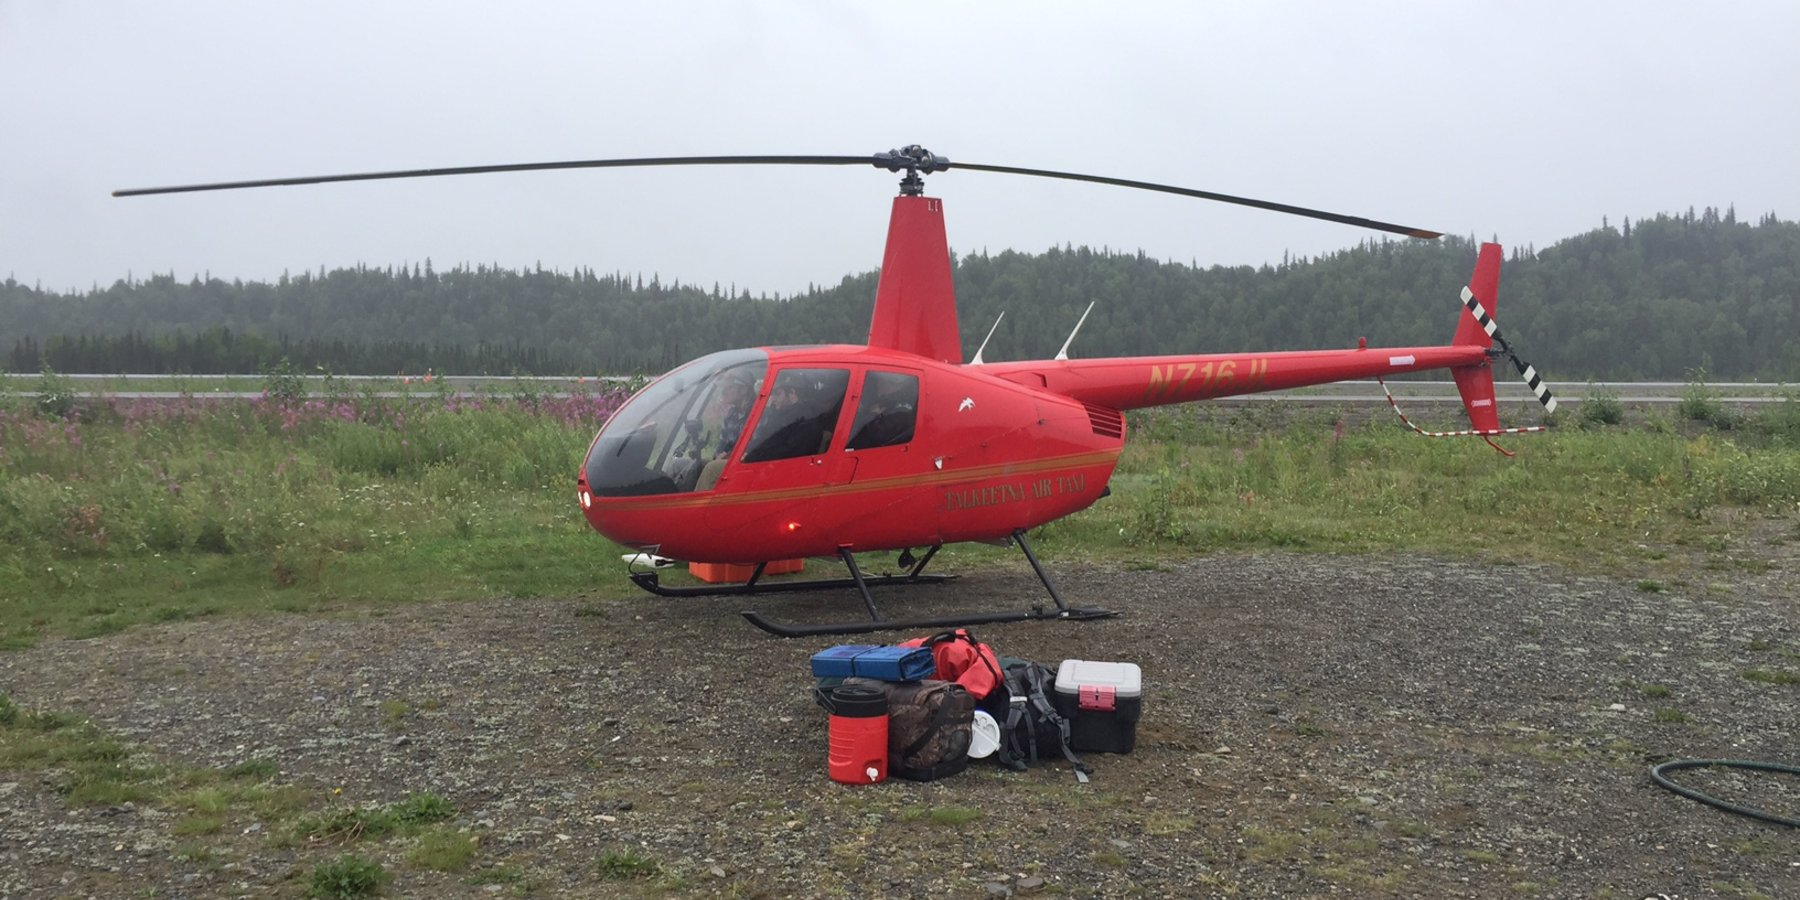 Get Remote with an Alaska Heli-Fishing Trip: Helicopter Fly-Outs to Exceptional Fishing, Wilderness & Adventure